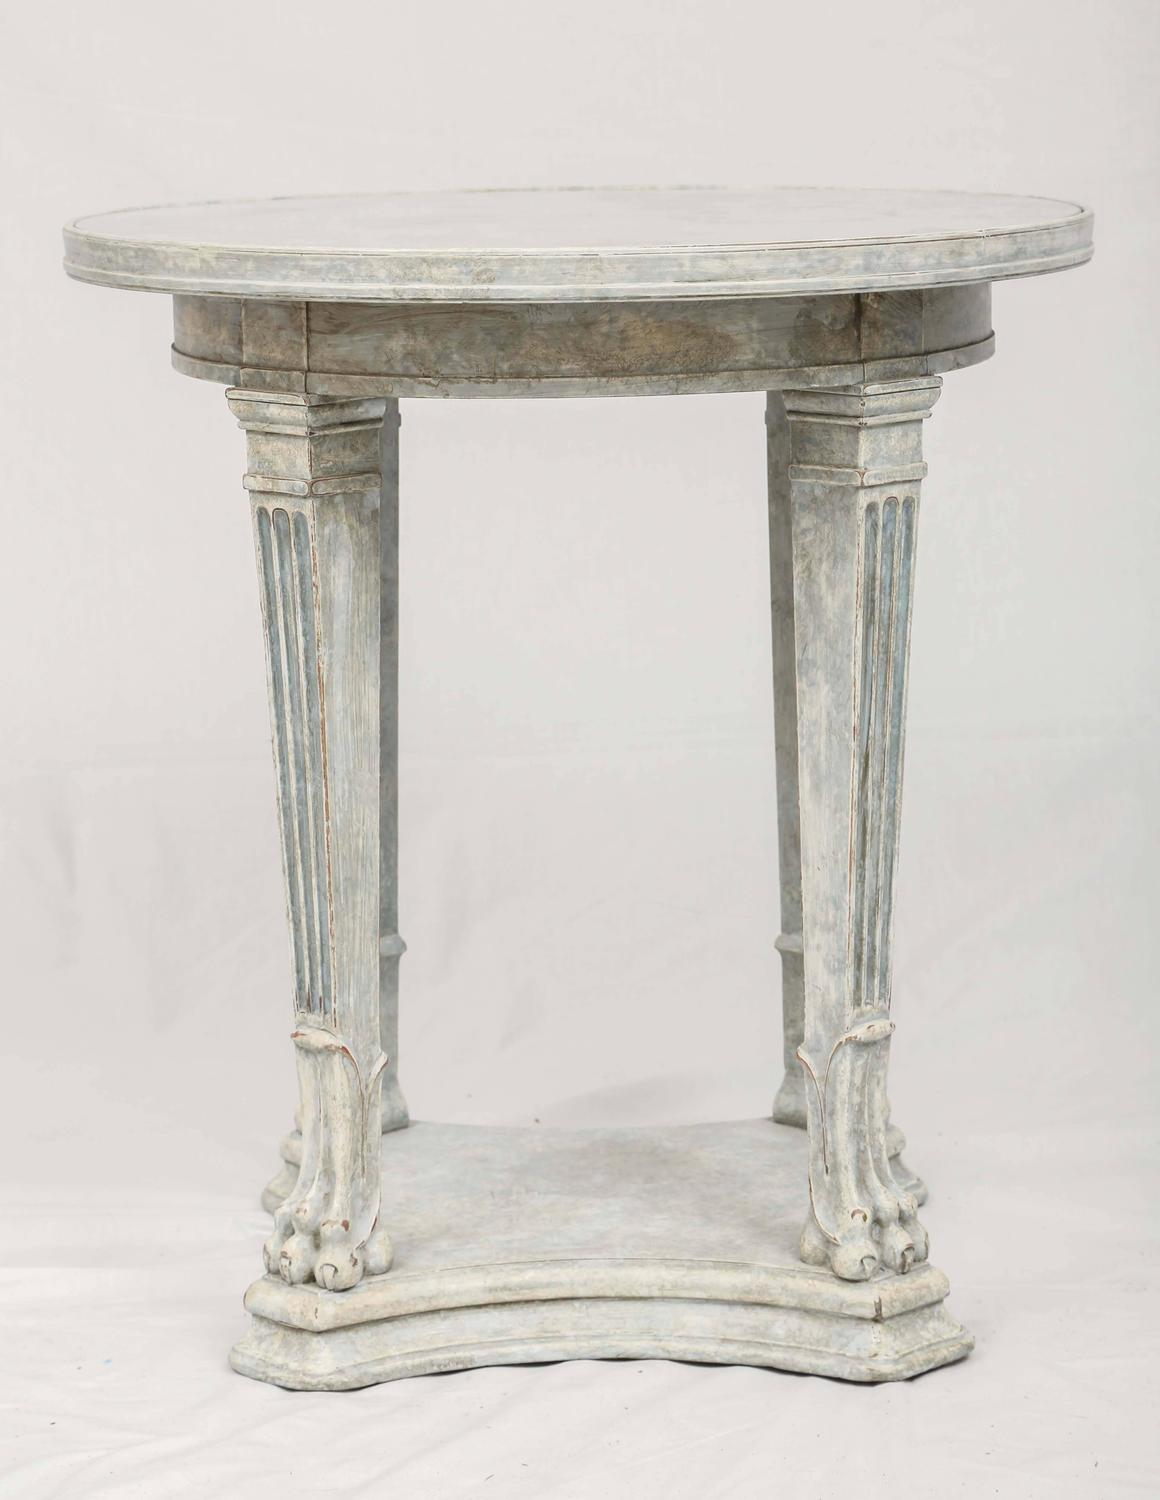 Round Occasional Table With Mirrored Top For Sale At 1stdibs